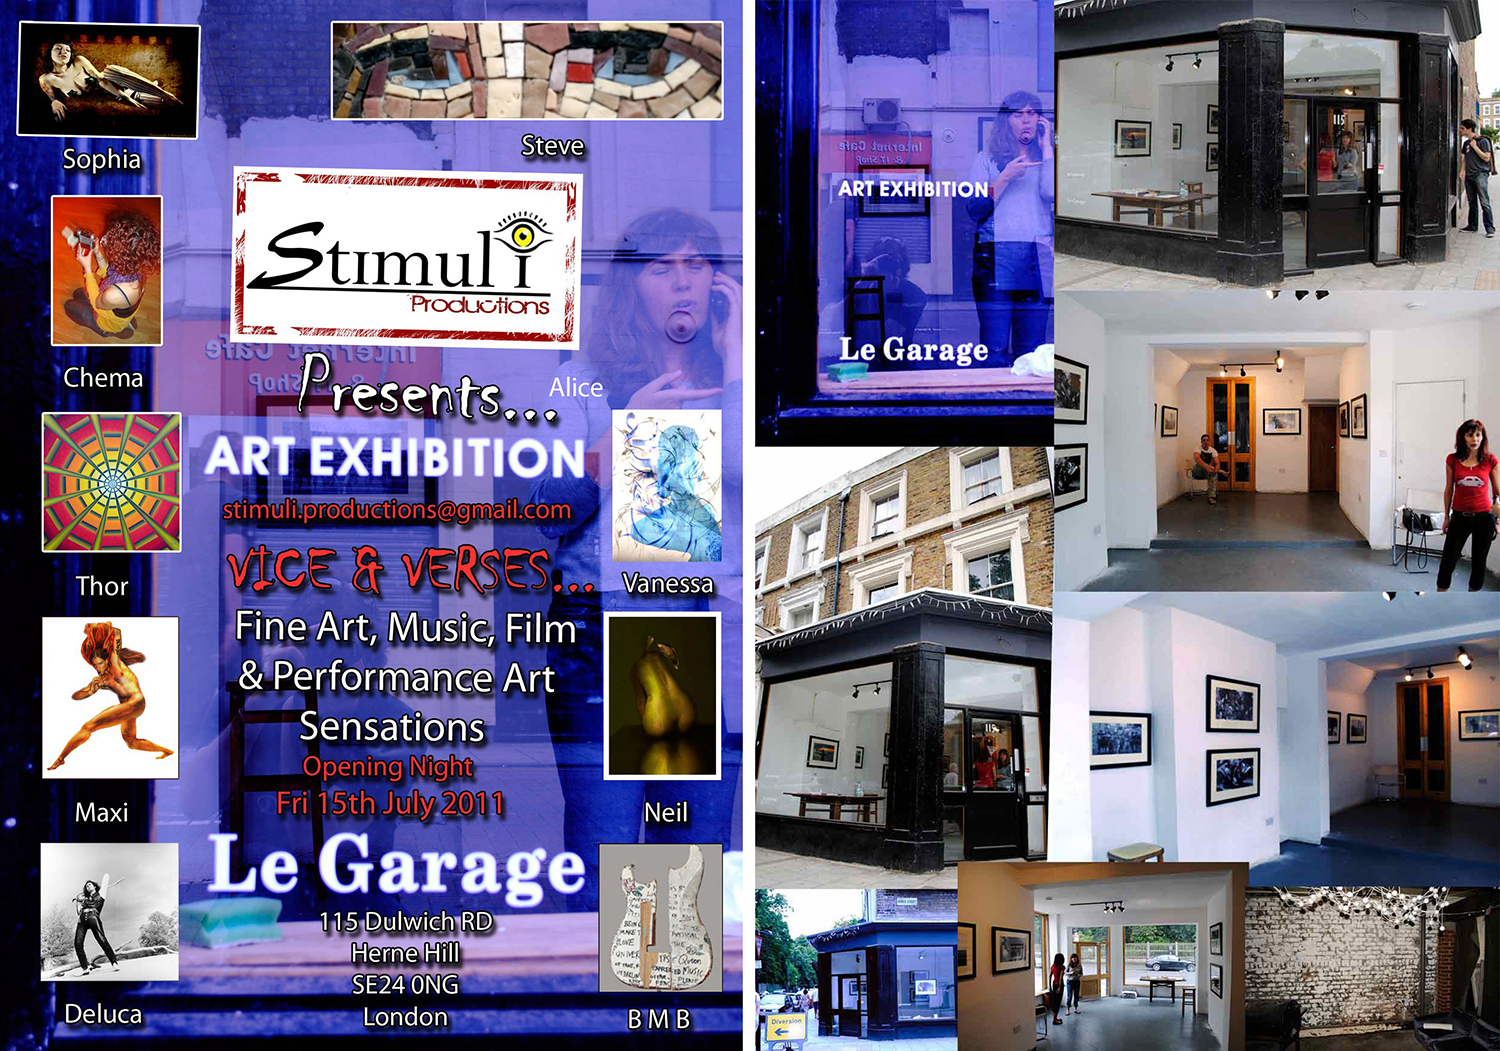 Le Garage exhibition - Brixton London - 2011